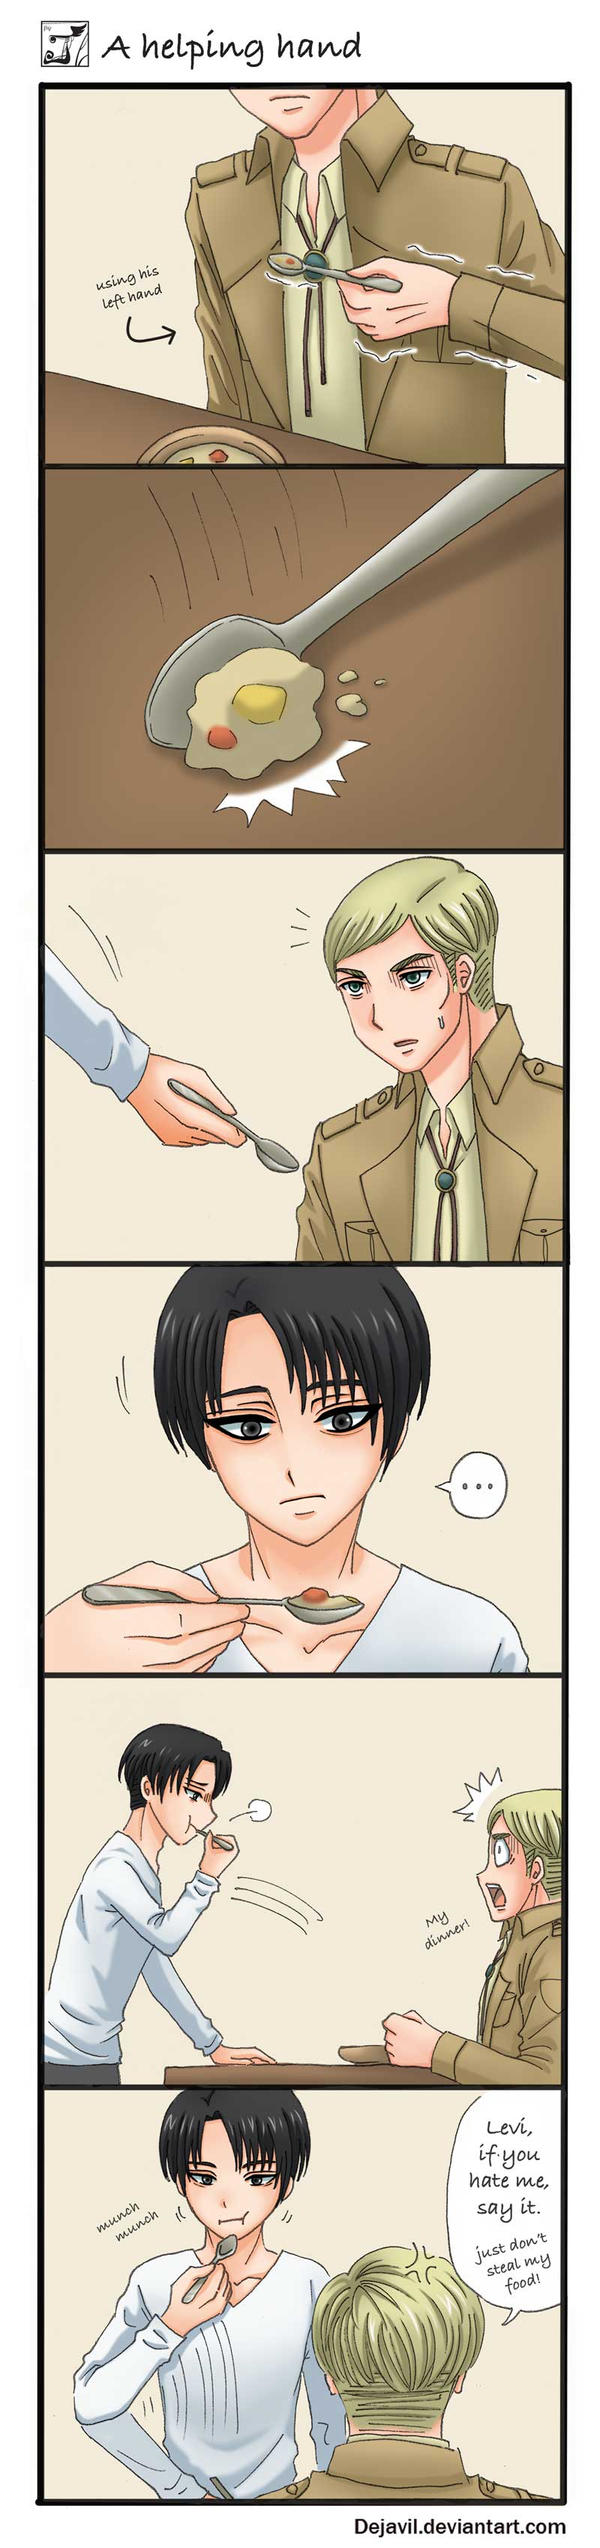 AOT: a helping hand by dejavil